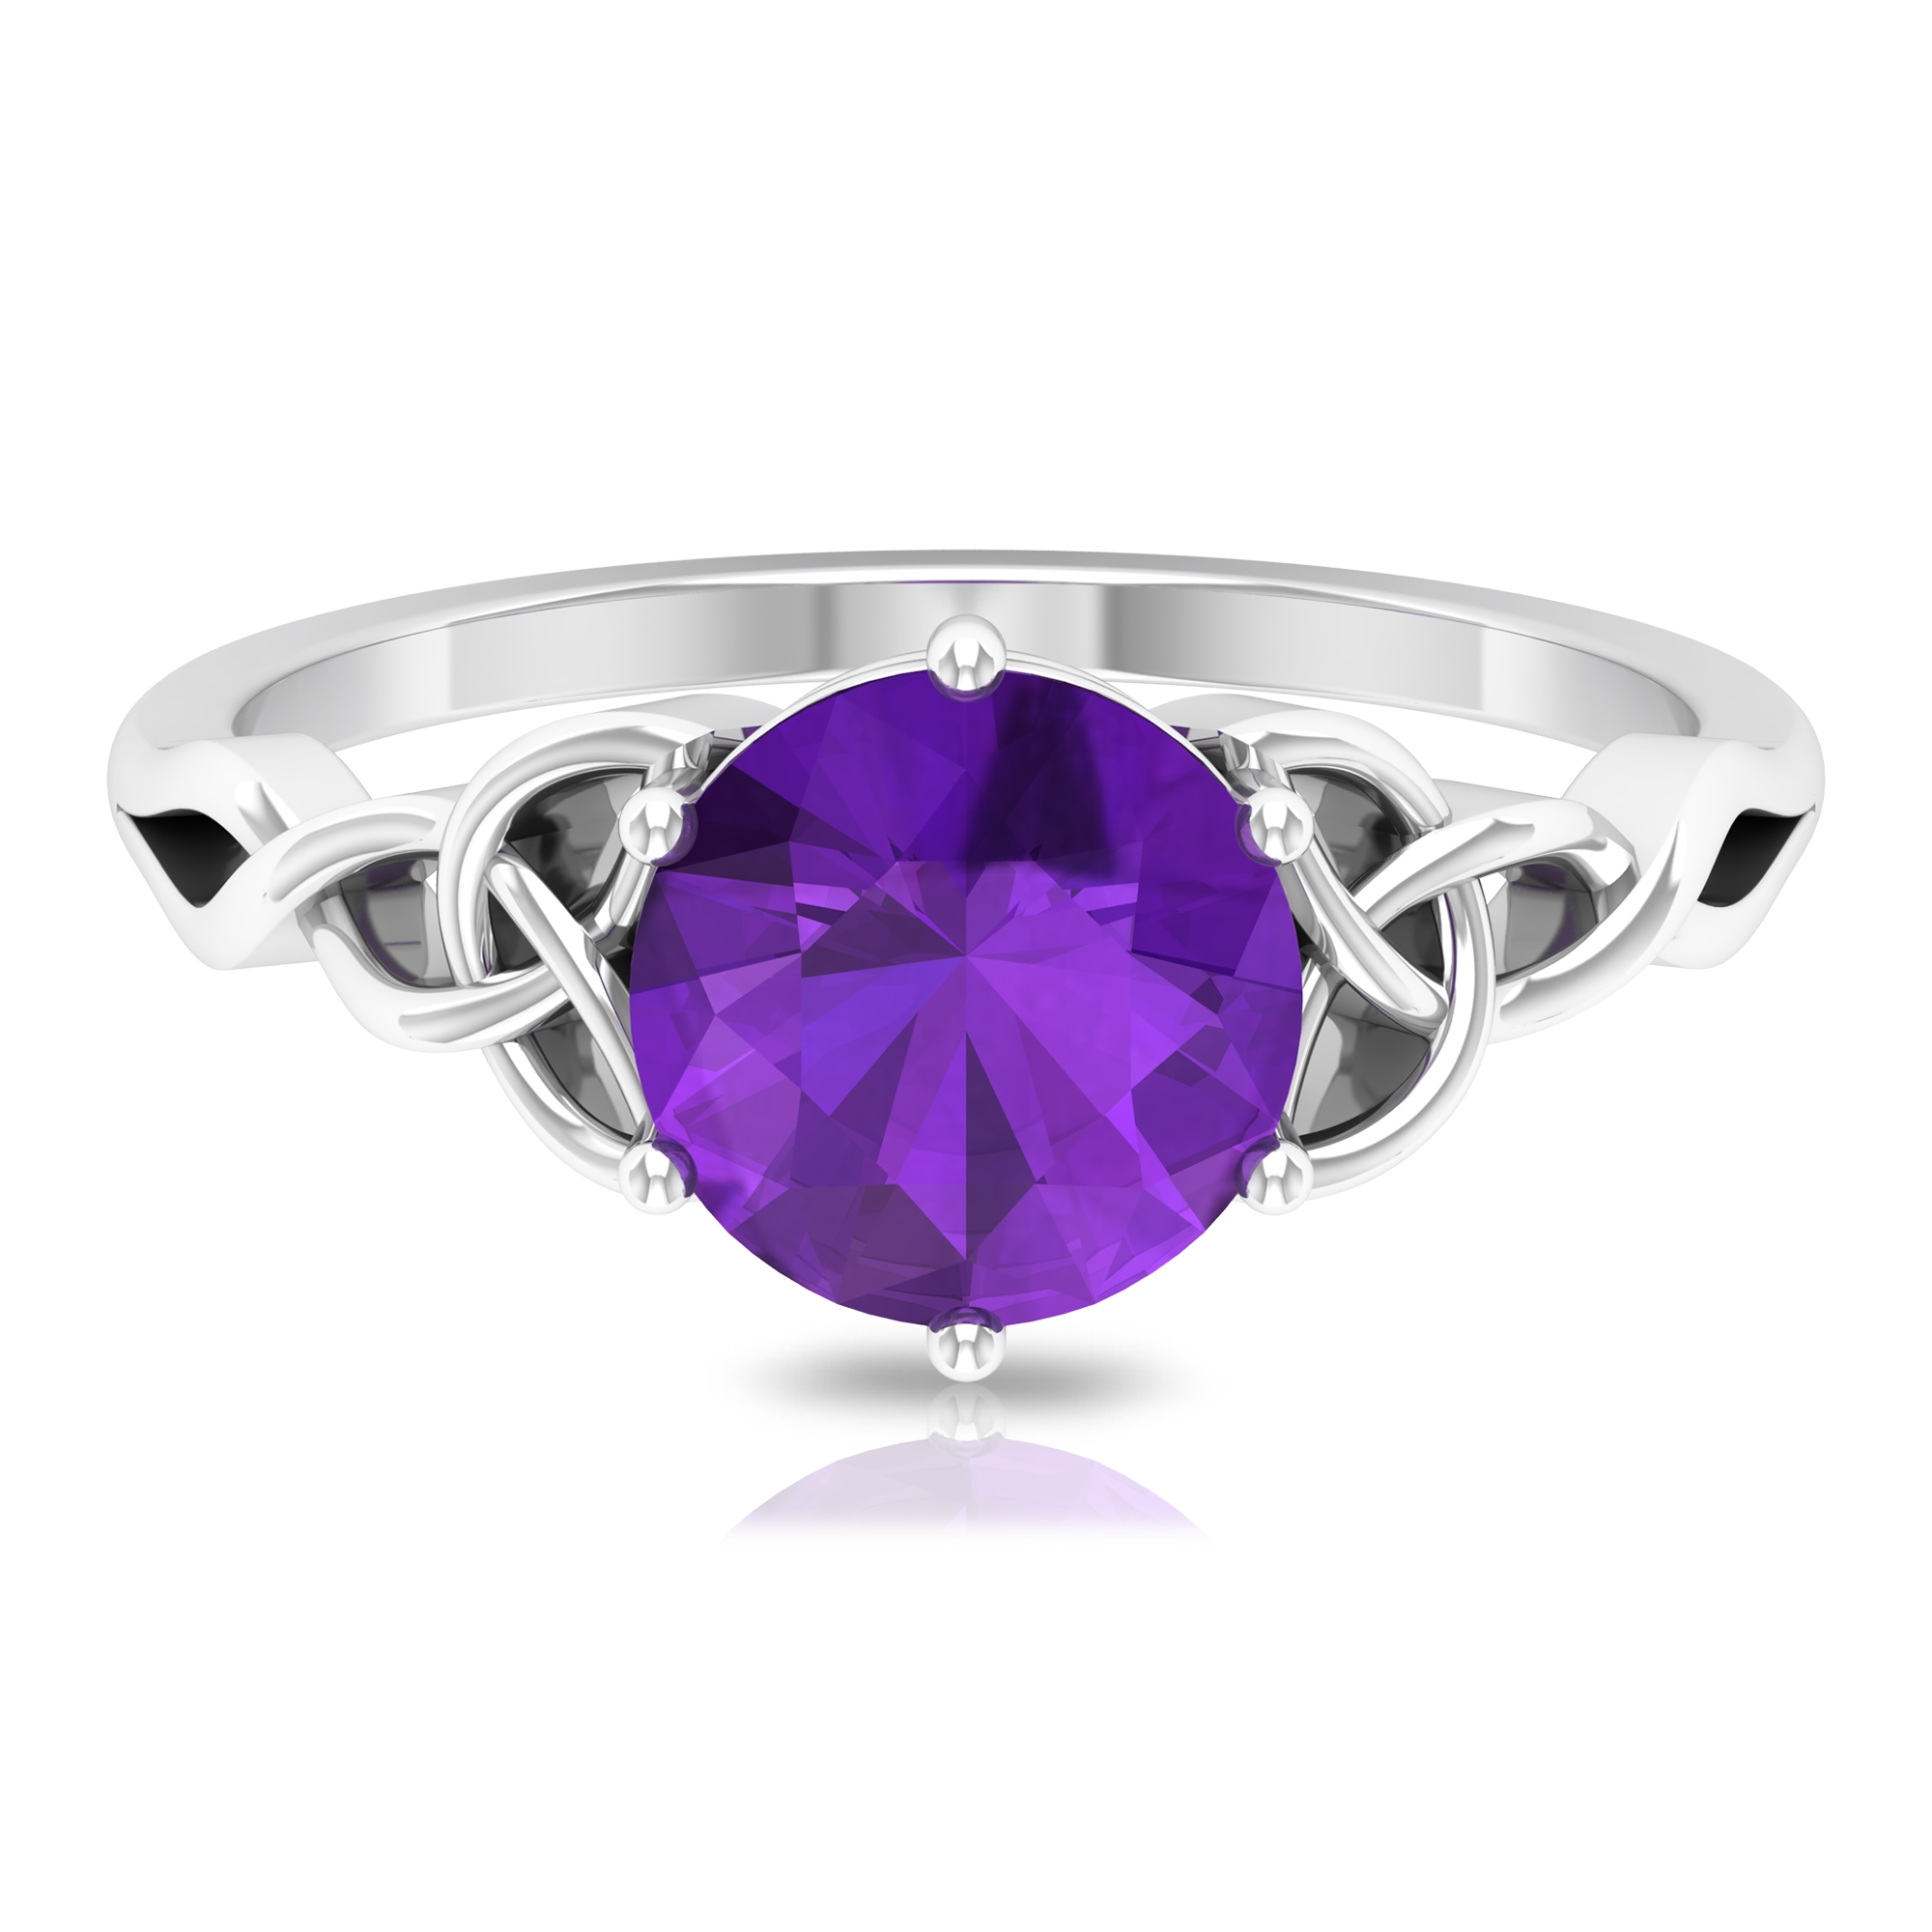 1.75 CT Solitaire Amethyst Celtic Engagement Ring in 6 Prong Setting